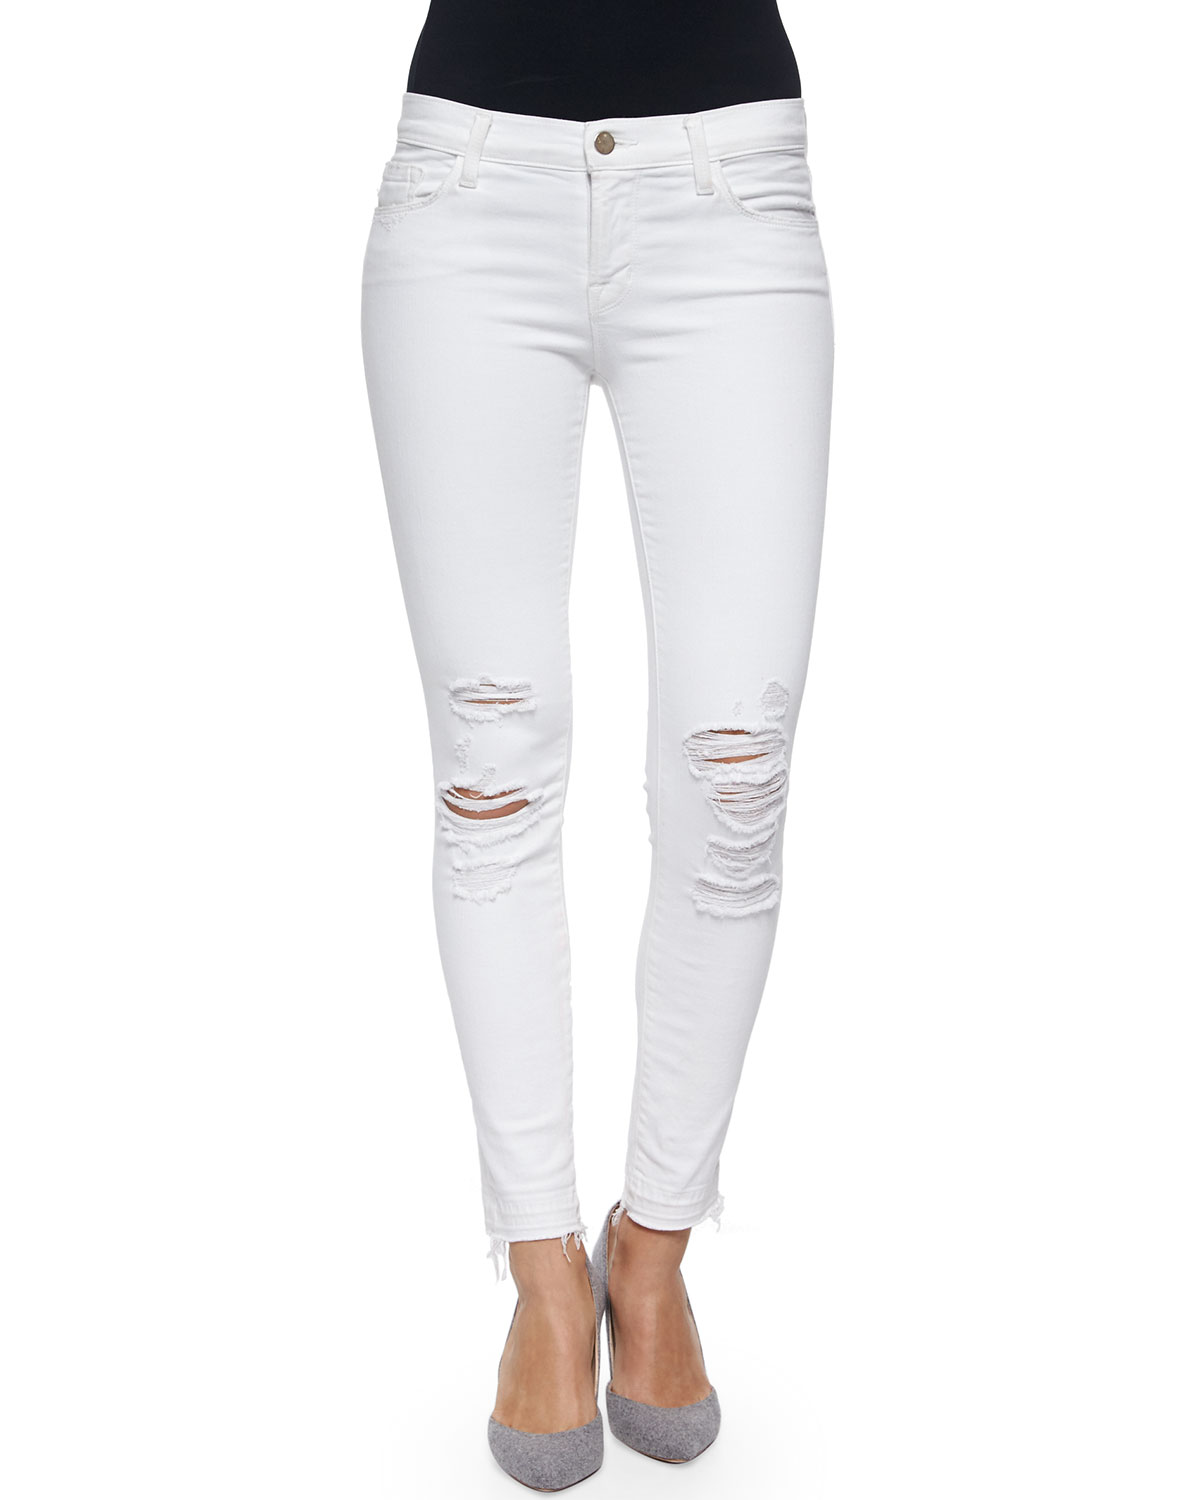 J Brand Jeans Low-Rise Skinny Crop Jeans, Demented, Size: 32, White